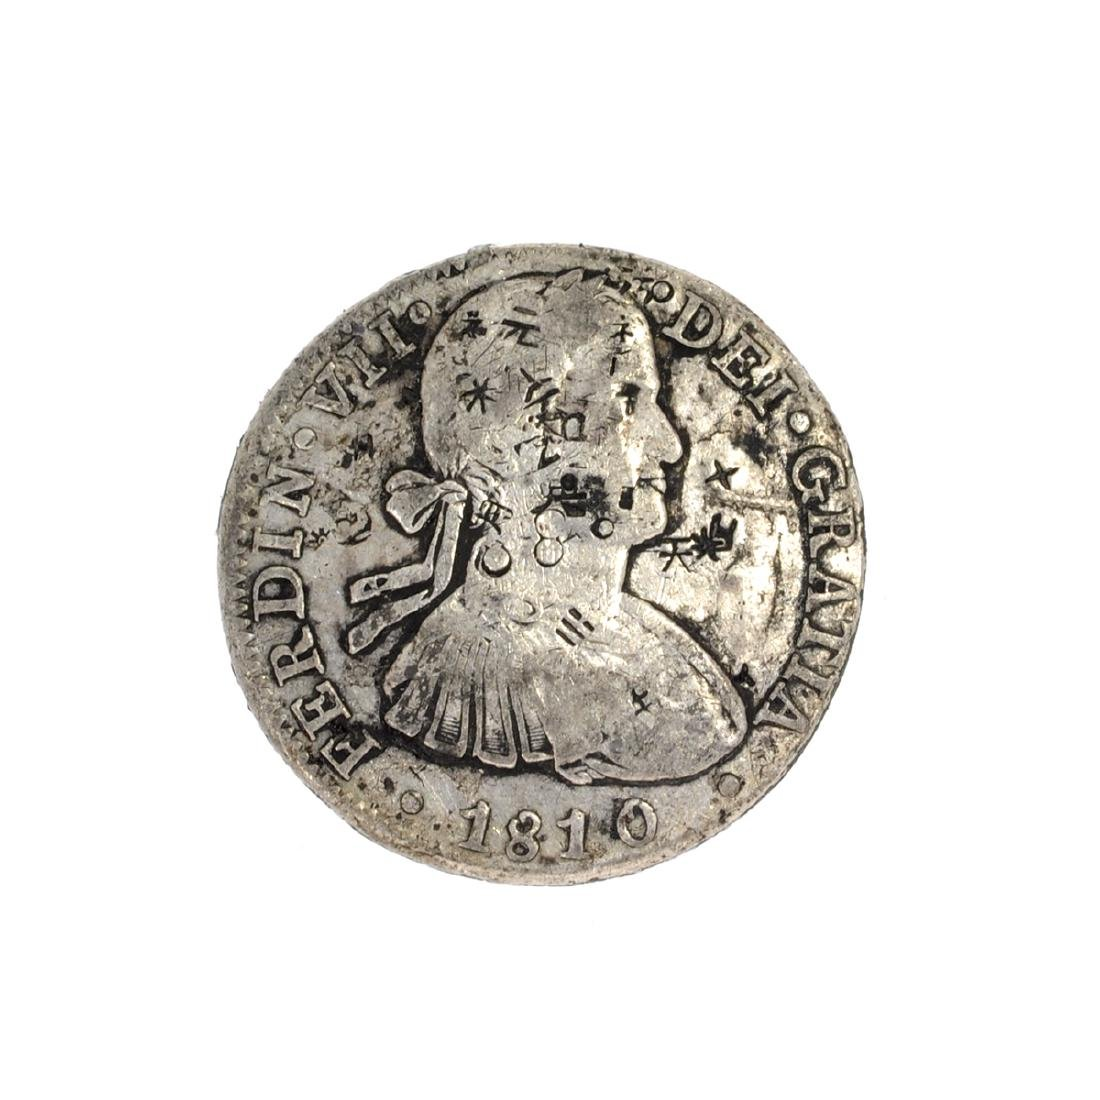 1810 Eigth Reales American First Silver Dollar Coin